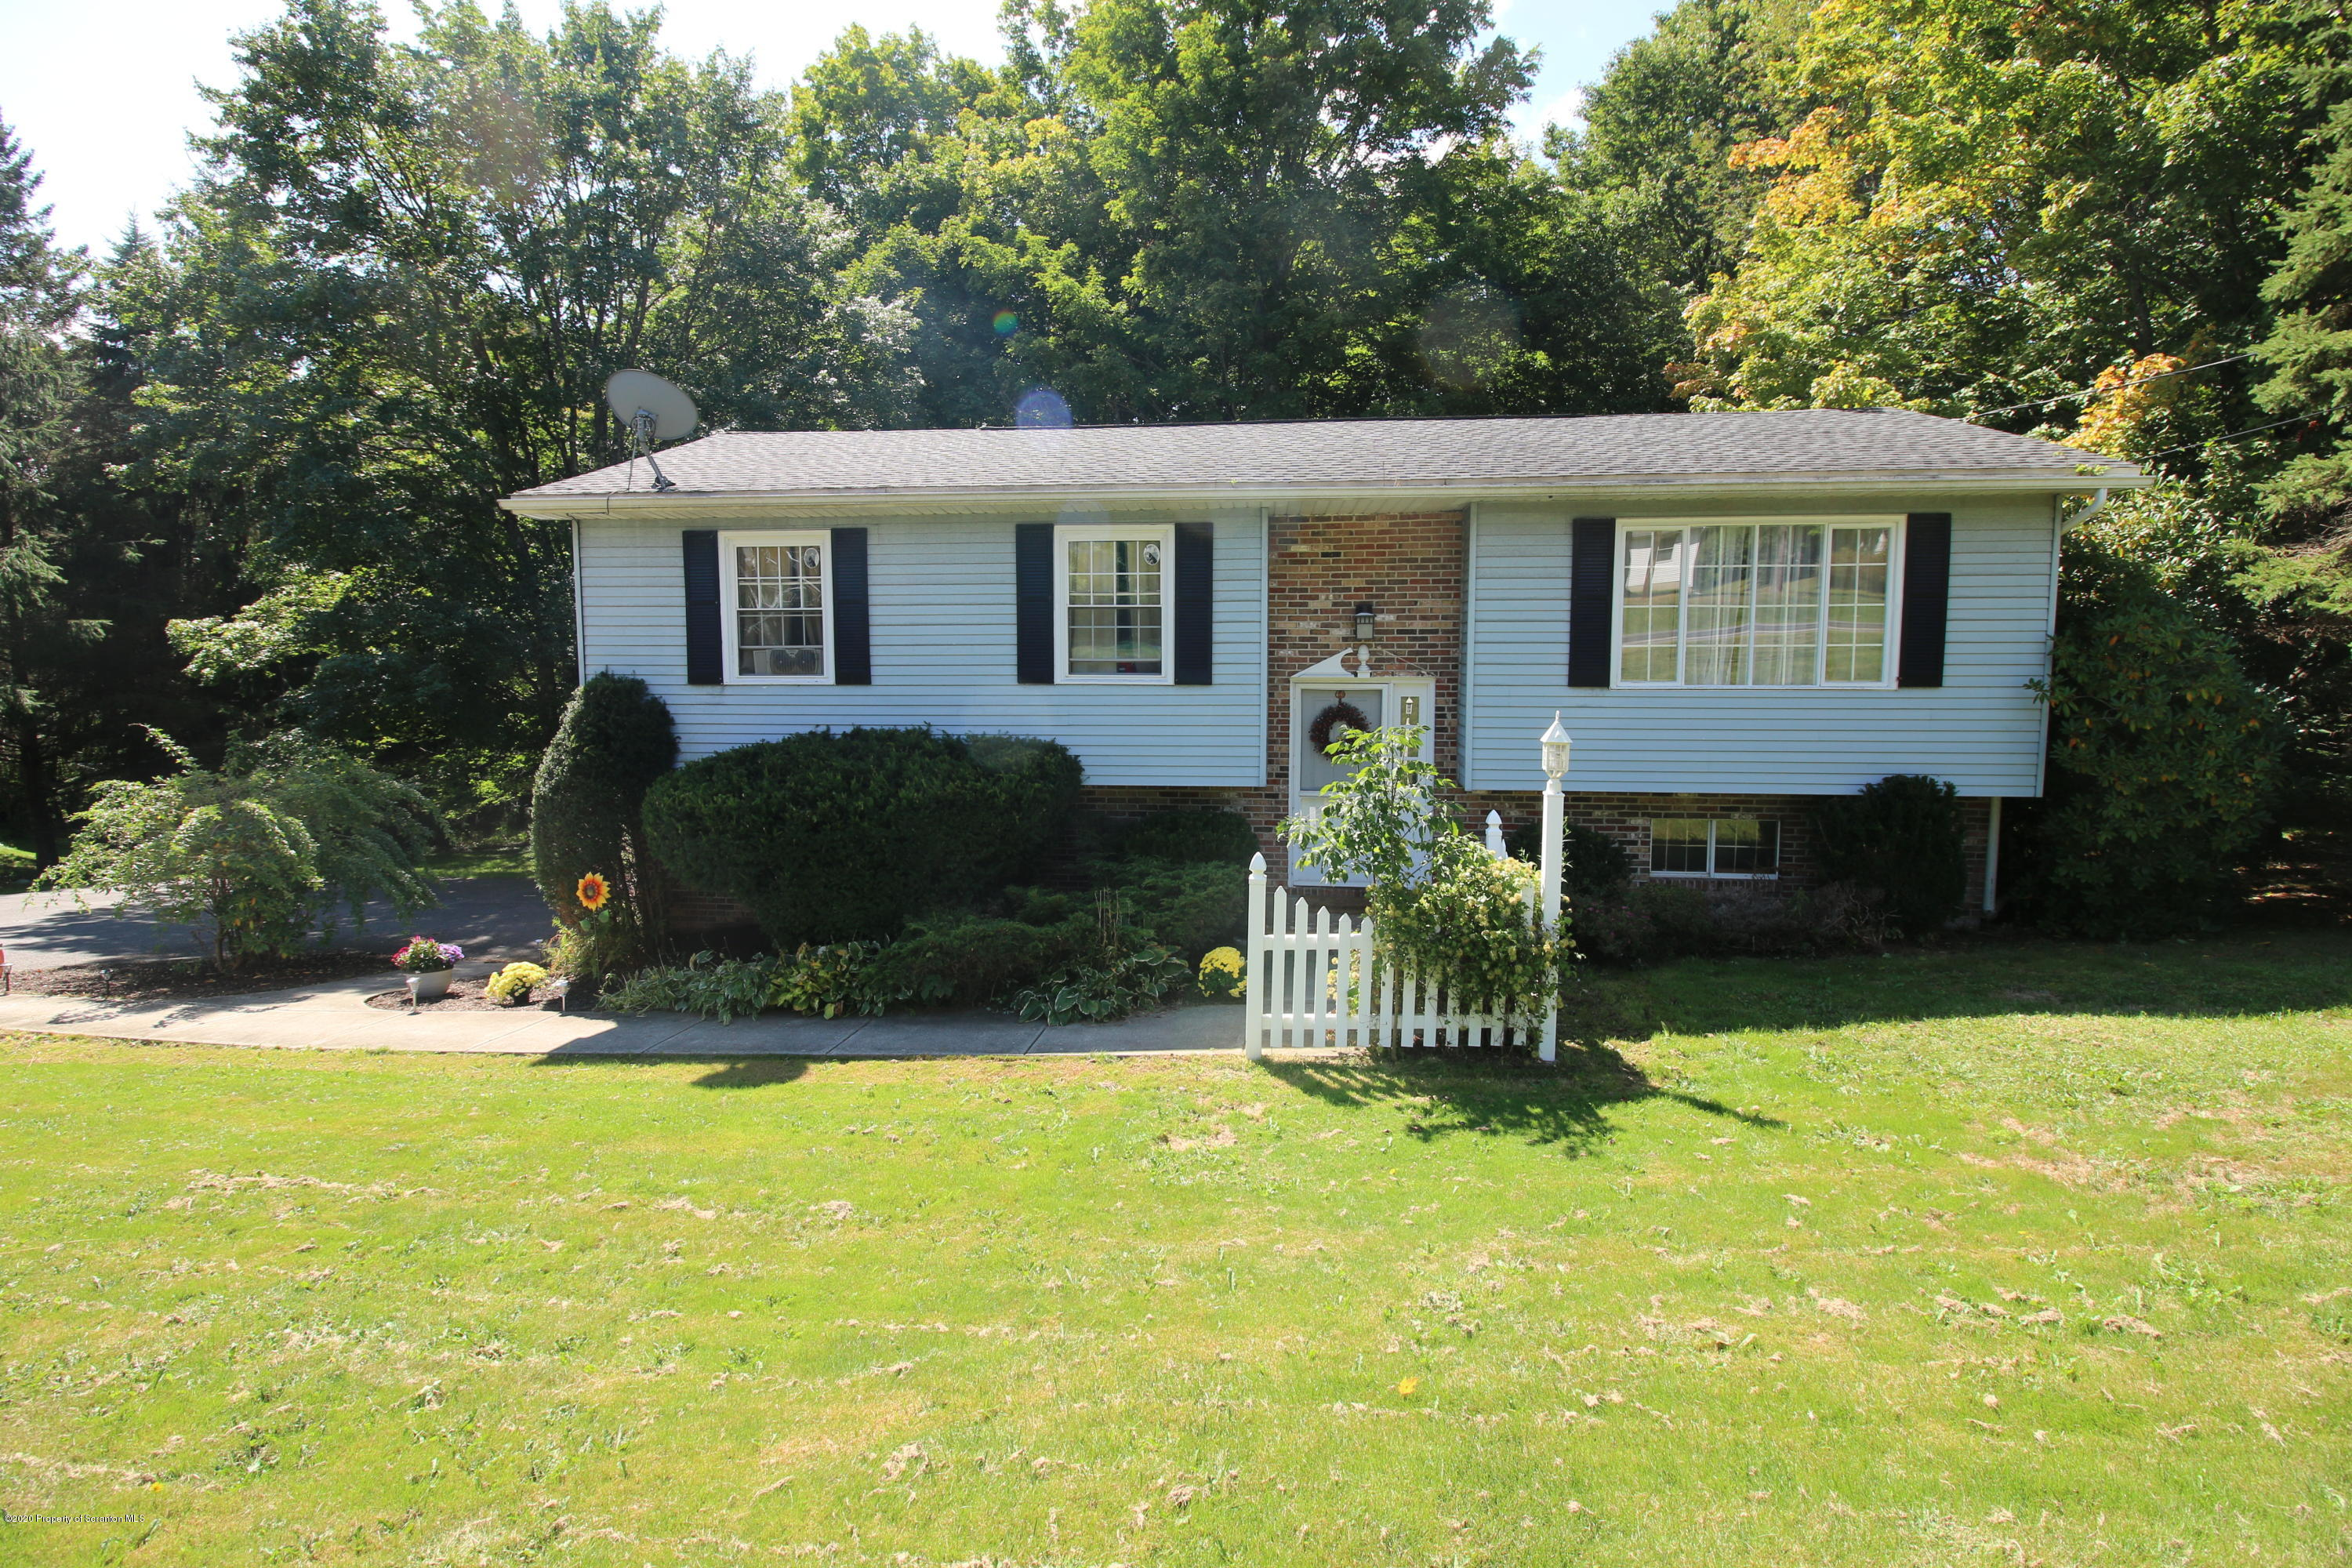 755 State Route 307, Spring Brook Twp, Pennsylvania 18444, 3 Bedrooms Bedrooms, 7 Rooms Rooms,2 BathroomsBathrooms,Single Family,For Sale,State Route 307,20-3807